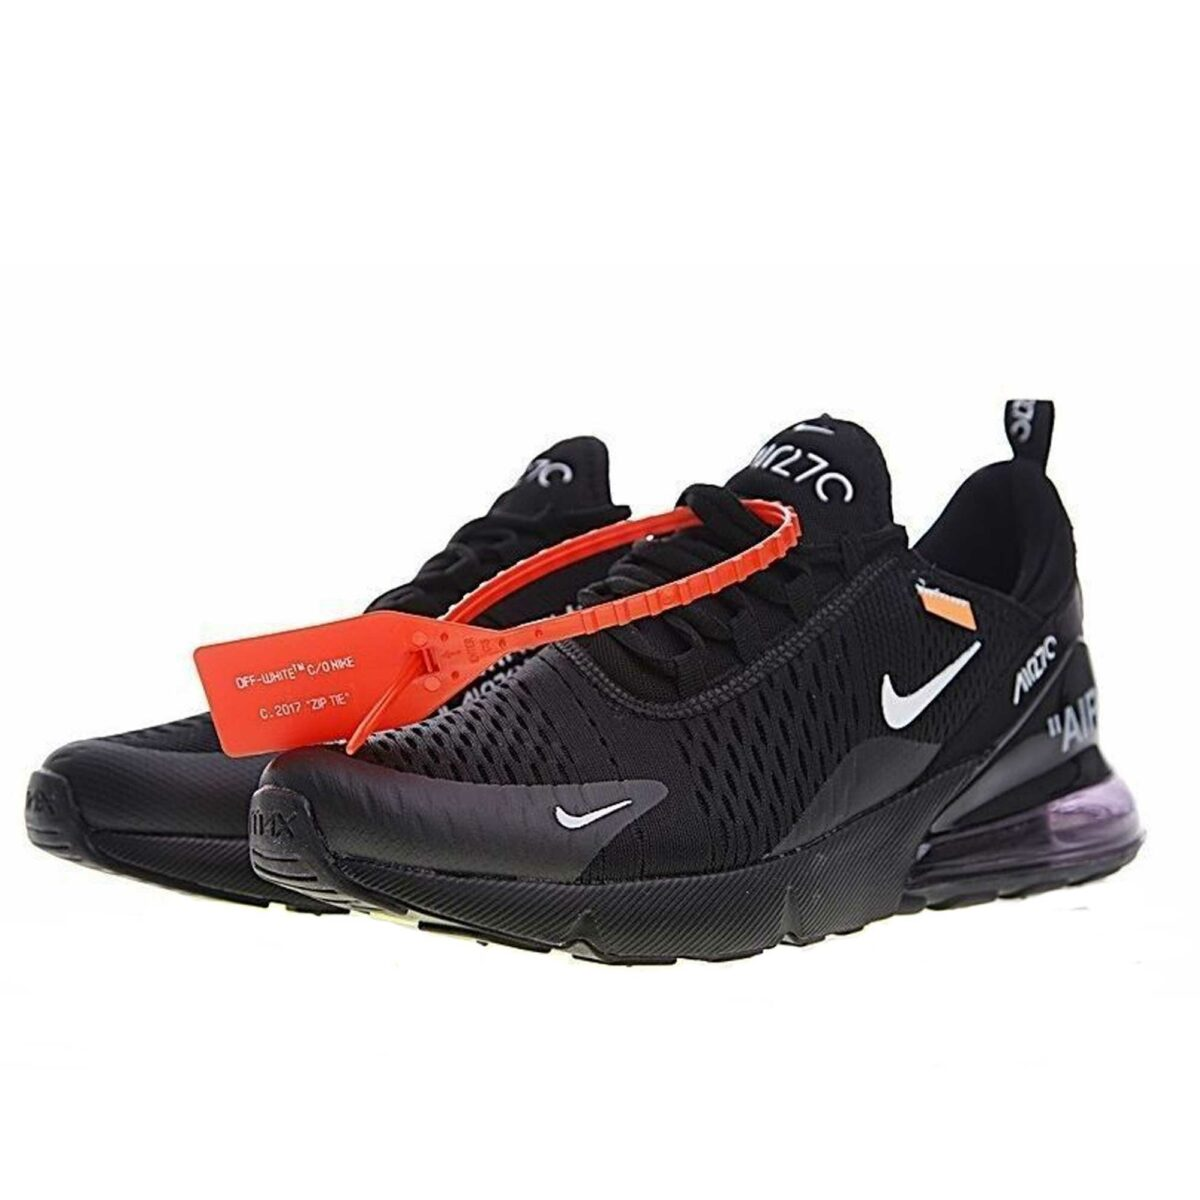 off-white x nike air max 270 black купить